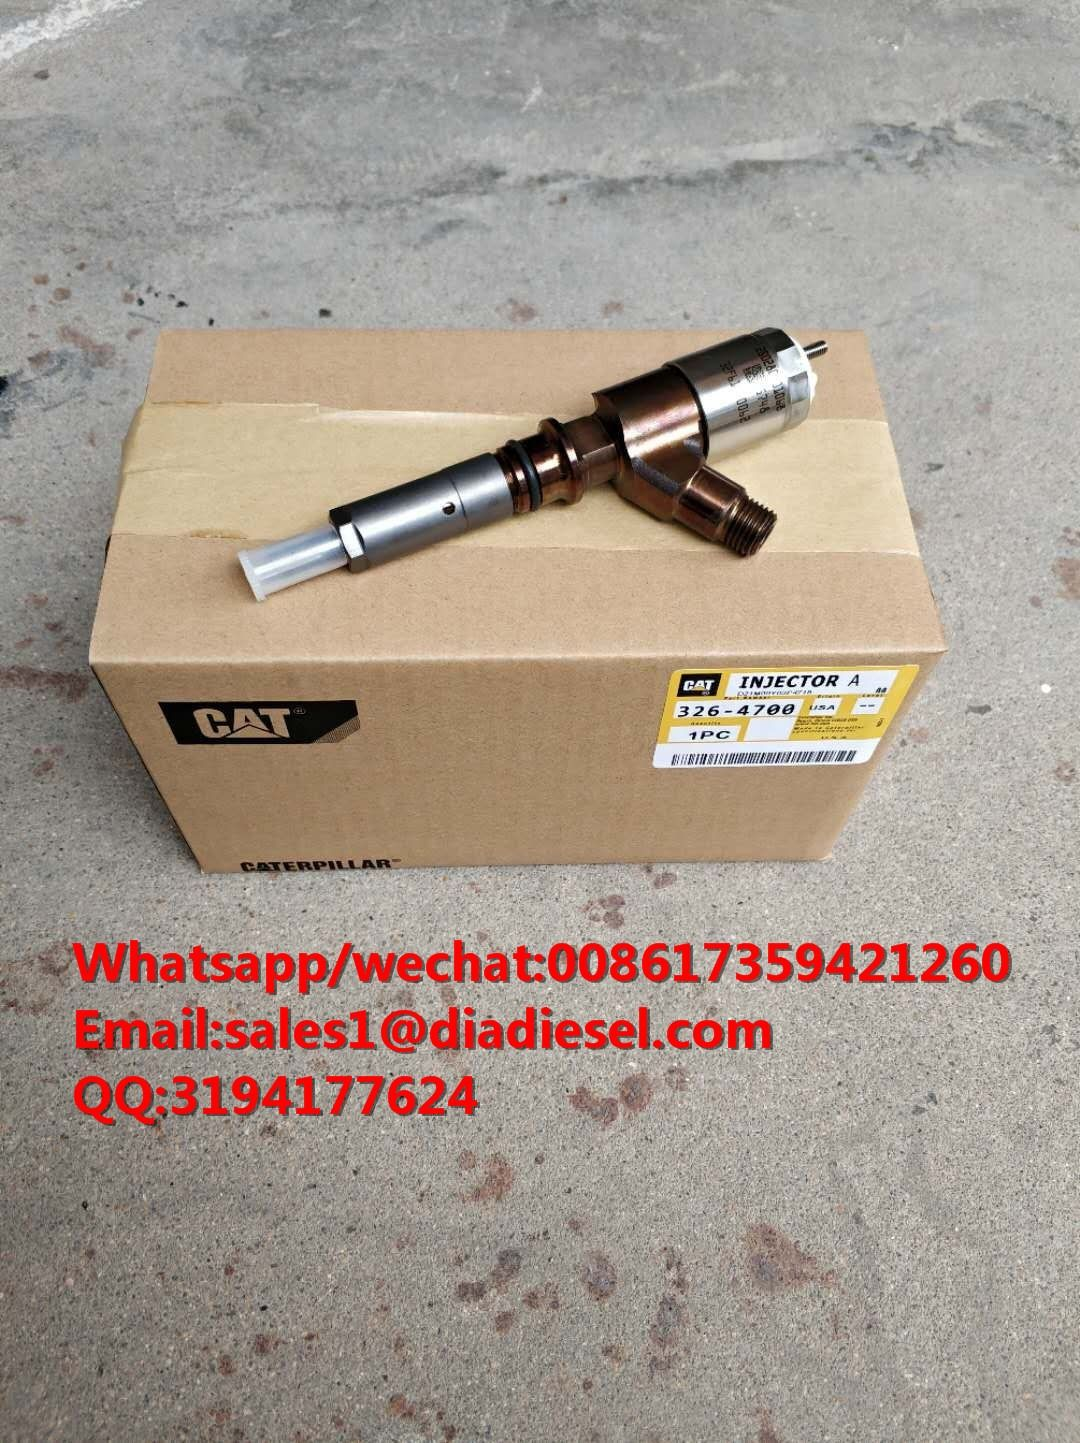 Diesel Fuel Injector Assembly 326-4700 For 320D C6 C6.4 engine  Whatsapp/wechat:008617359421260 Email:sales1@diadiesel.com QQ:3194177624